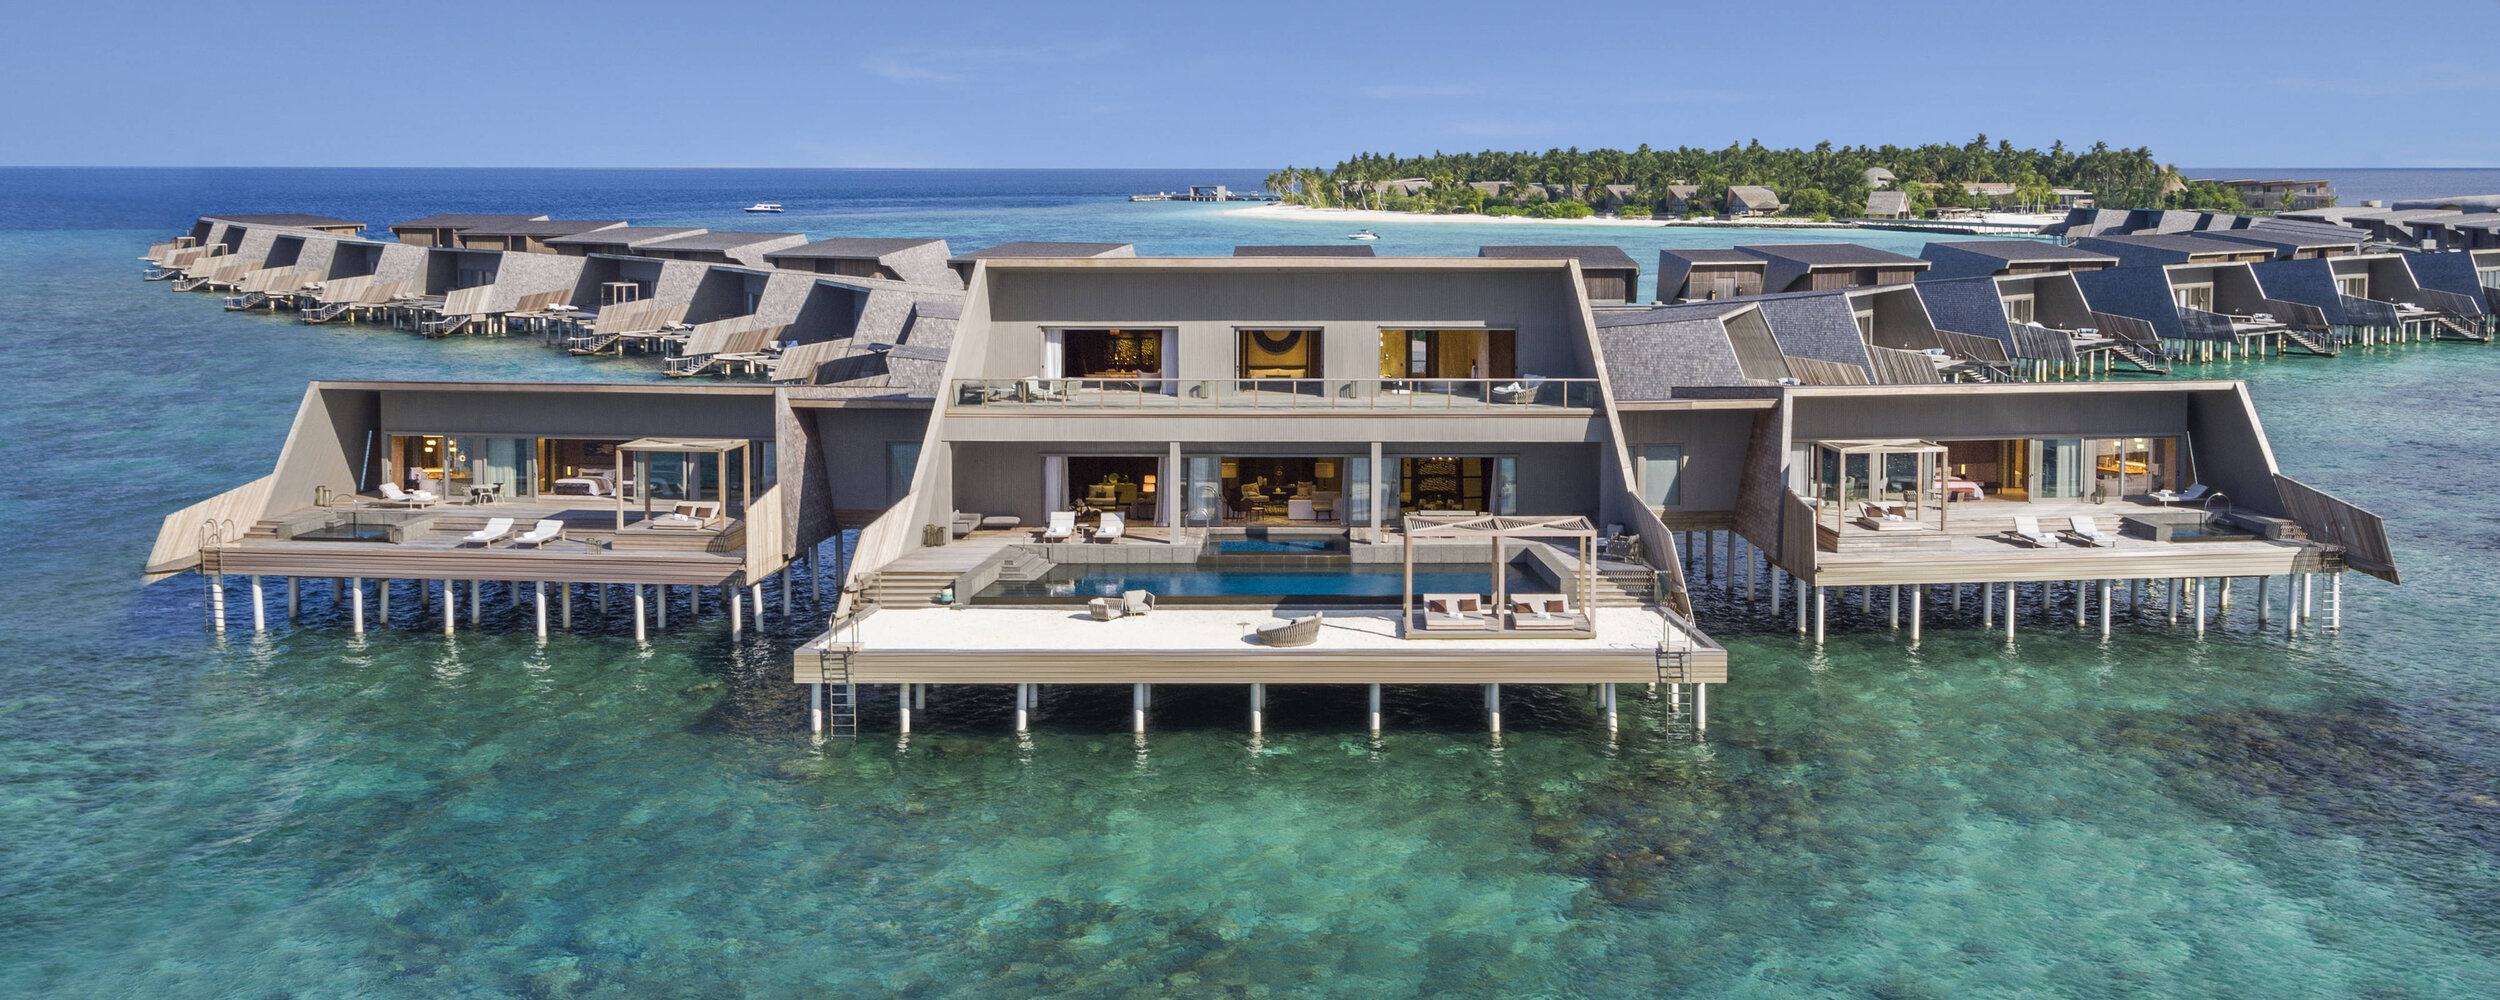 Photo Credit: The St. Regis Maldives Vommuli Resort